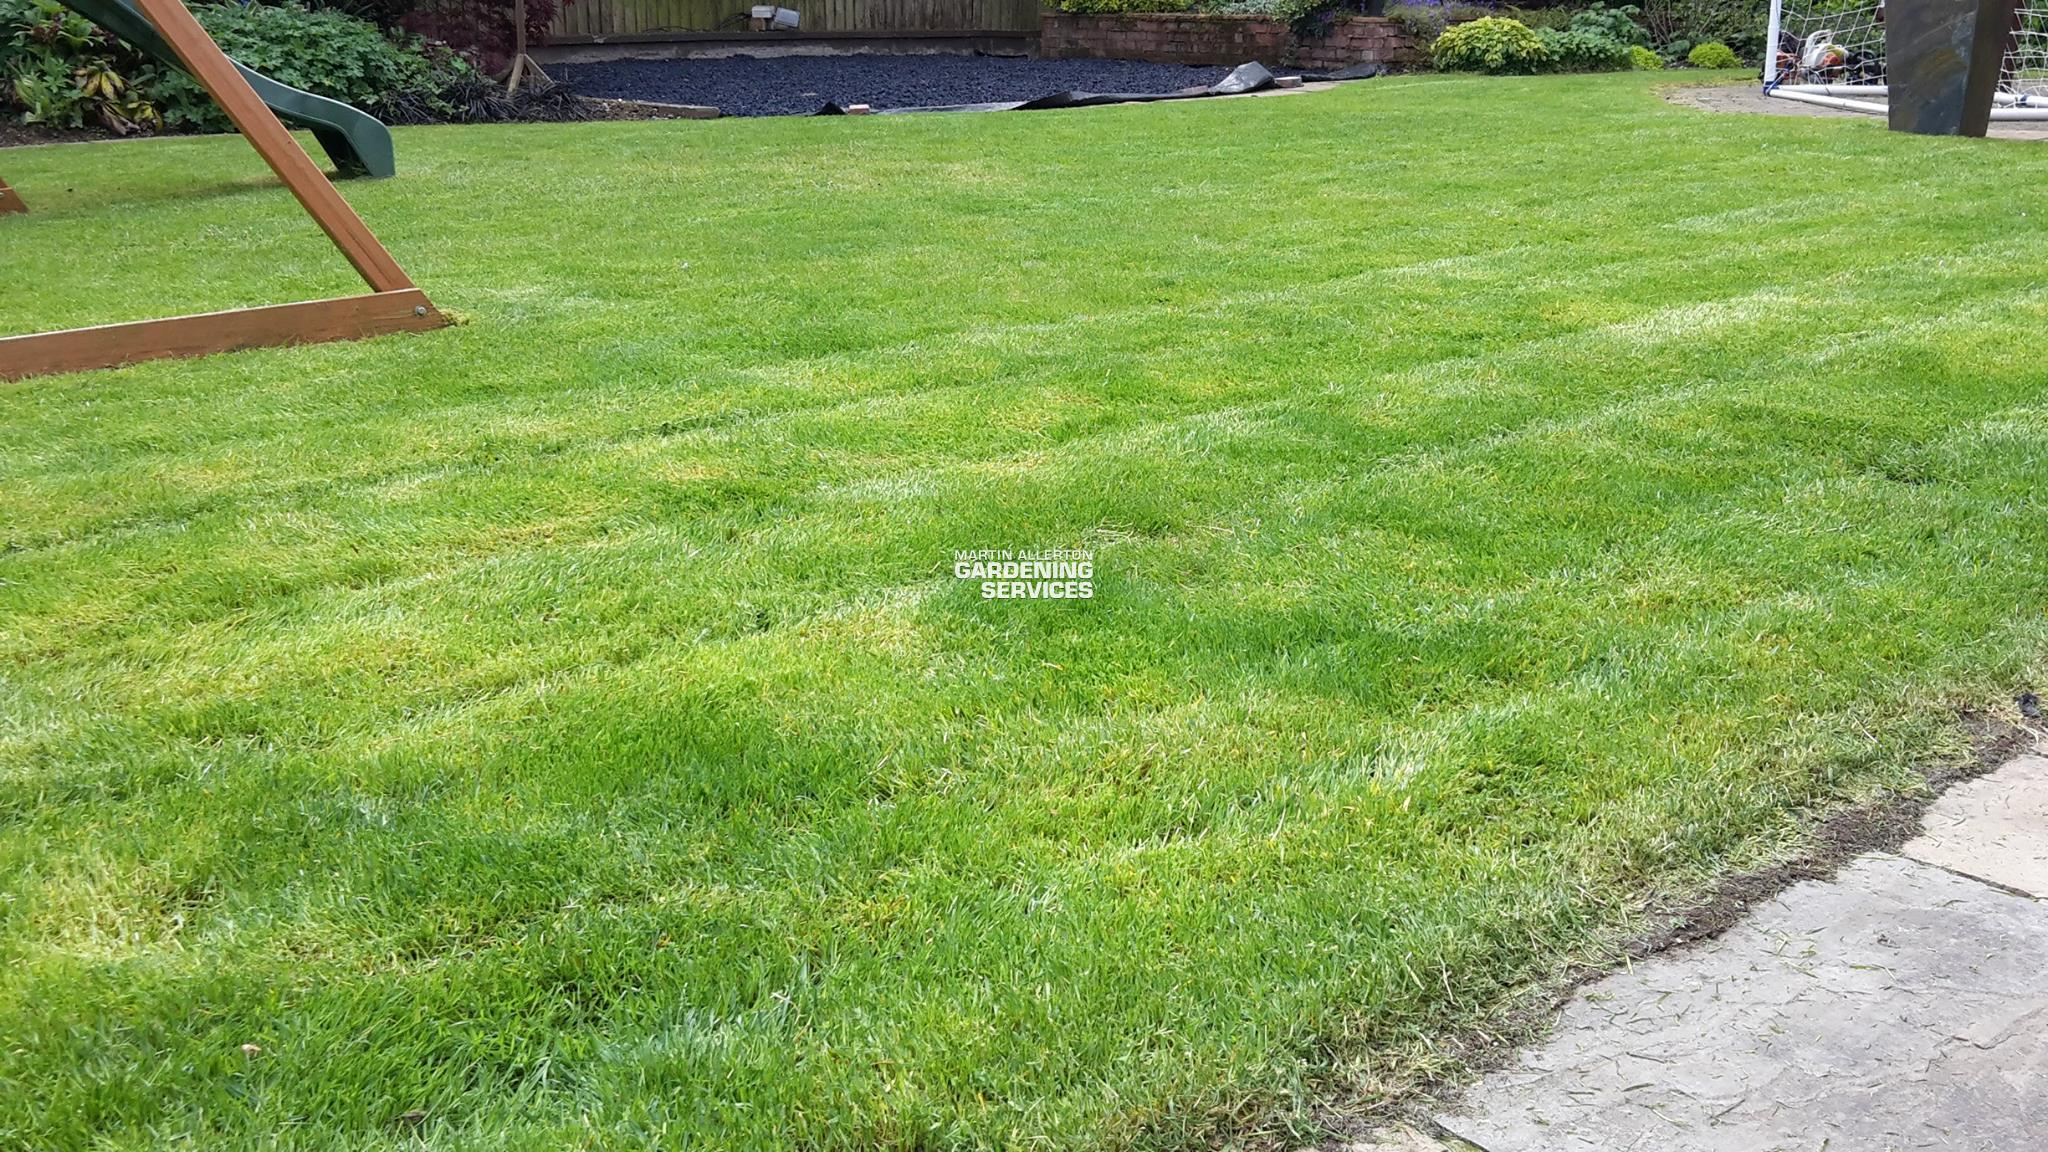 Hilderstone lawn mowing - after